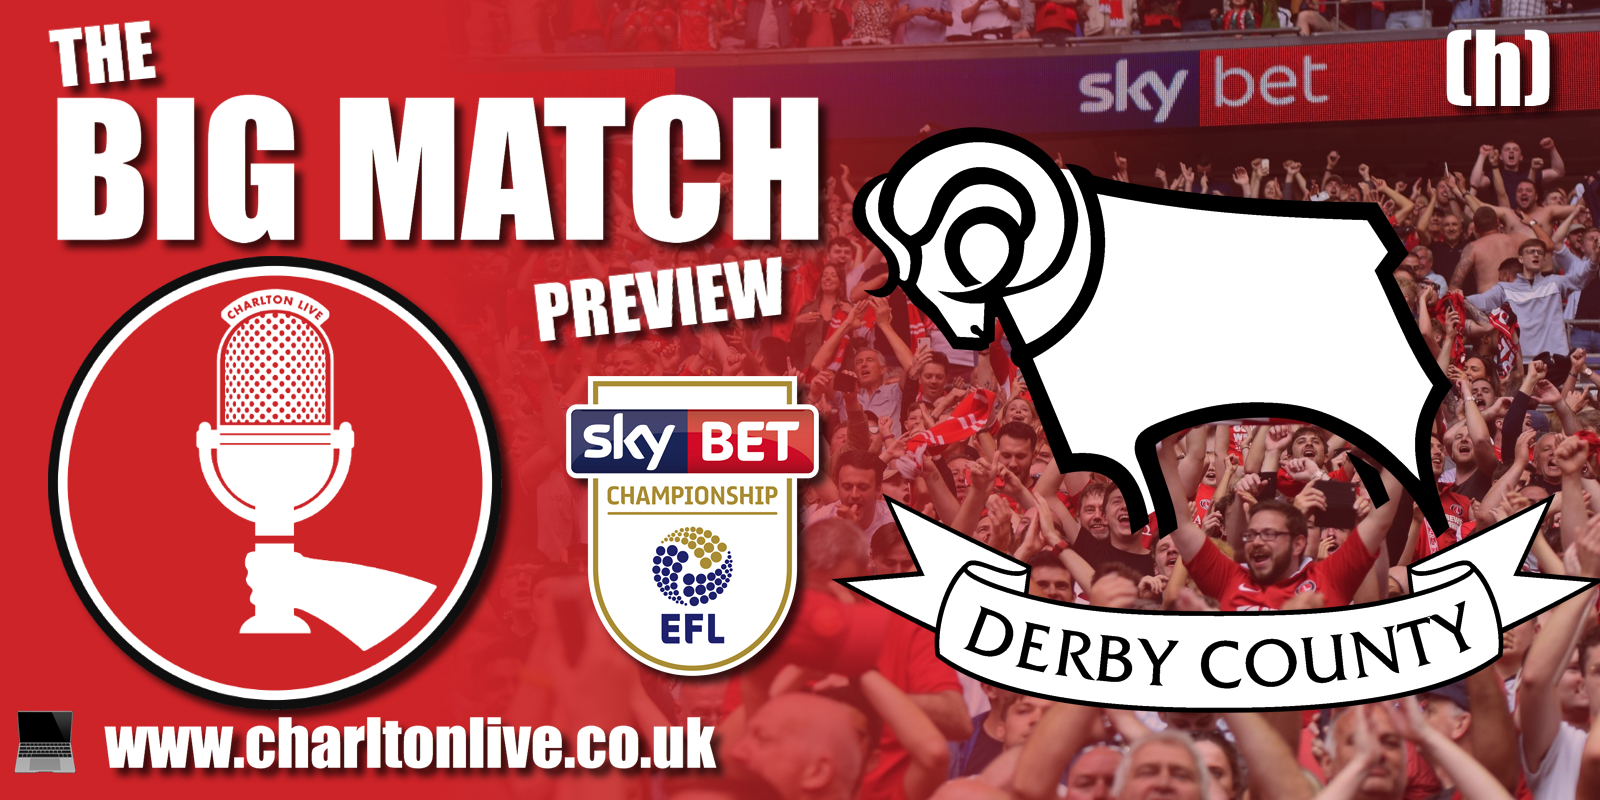 Join Louis Mendez, Tom Wallin, Nathan Muller and Lewis Catt as they look ahead to Derby County. They hear Lee Bowyer discuss how our players […]